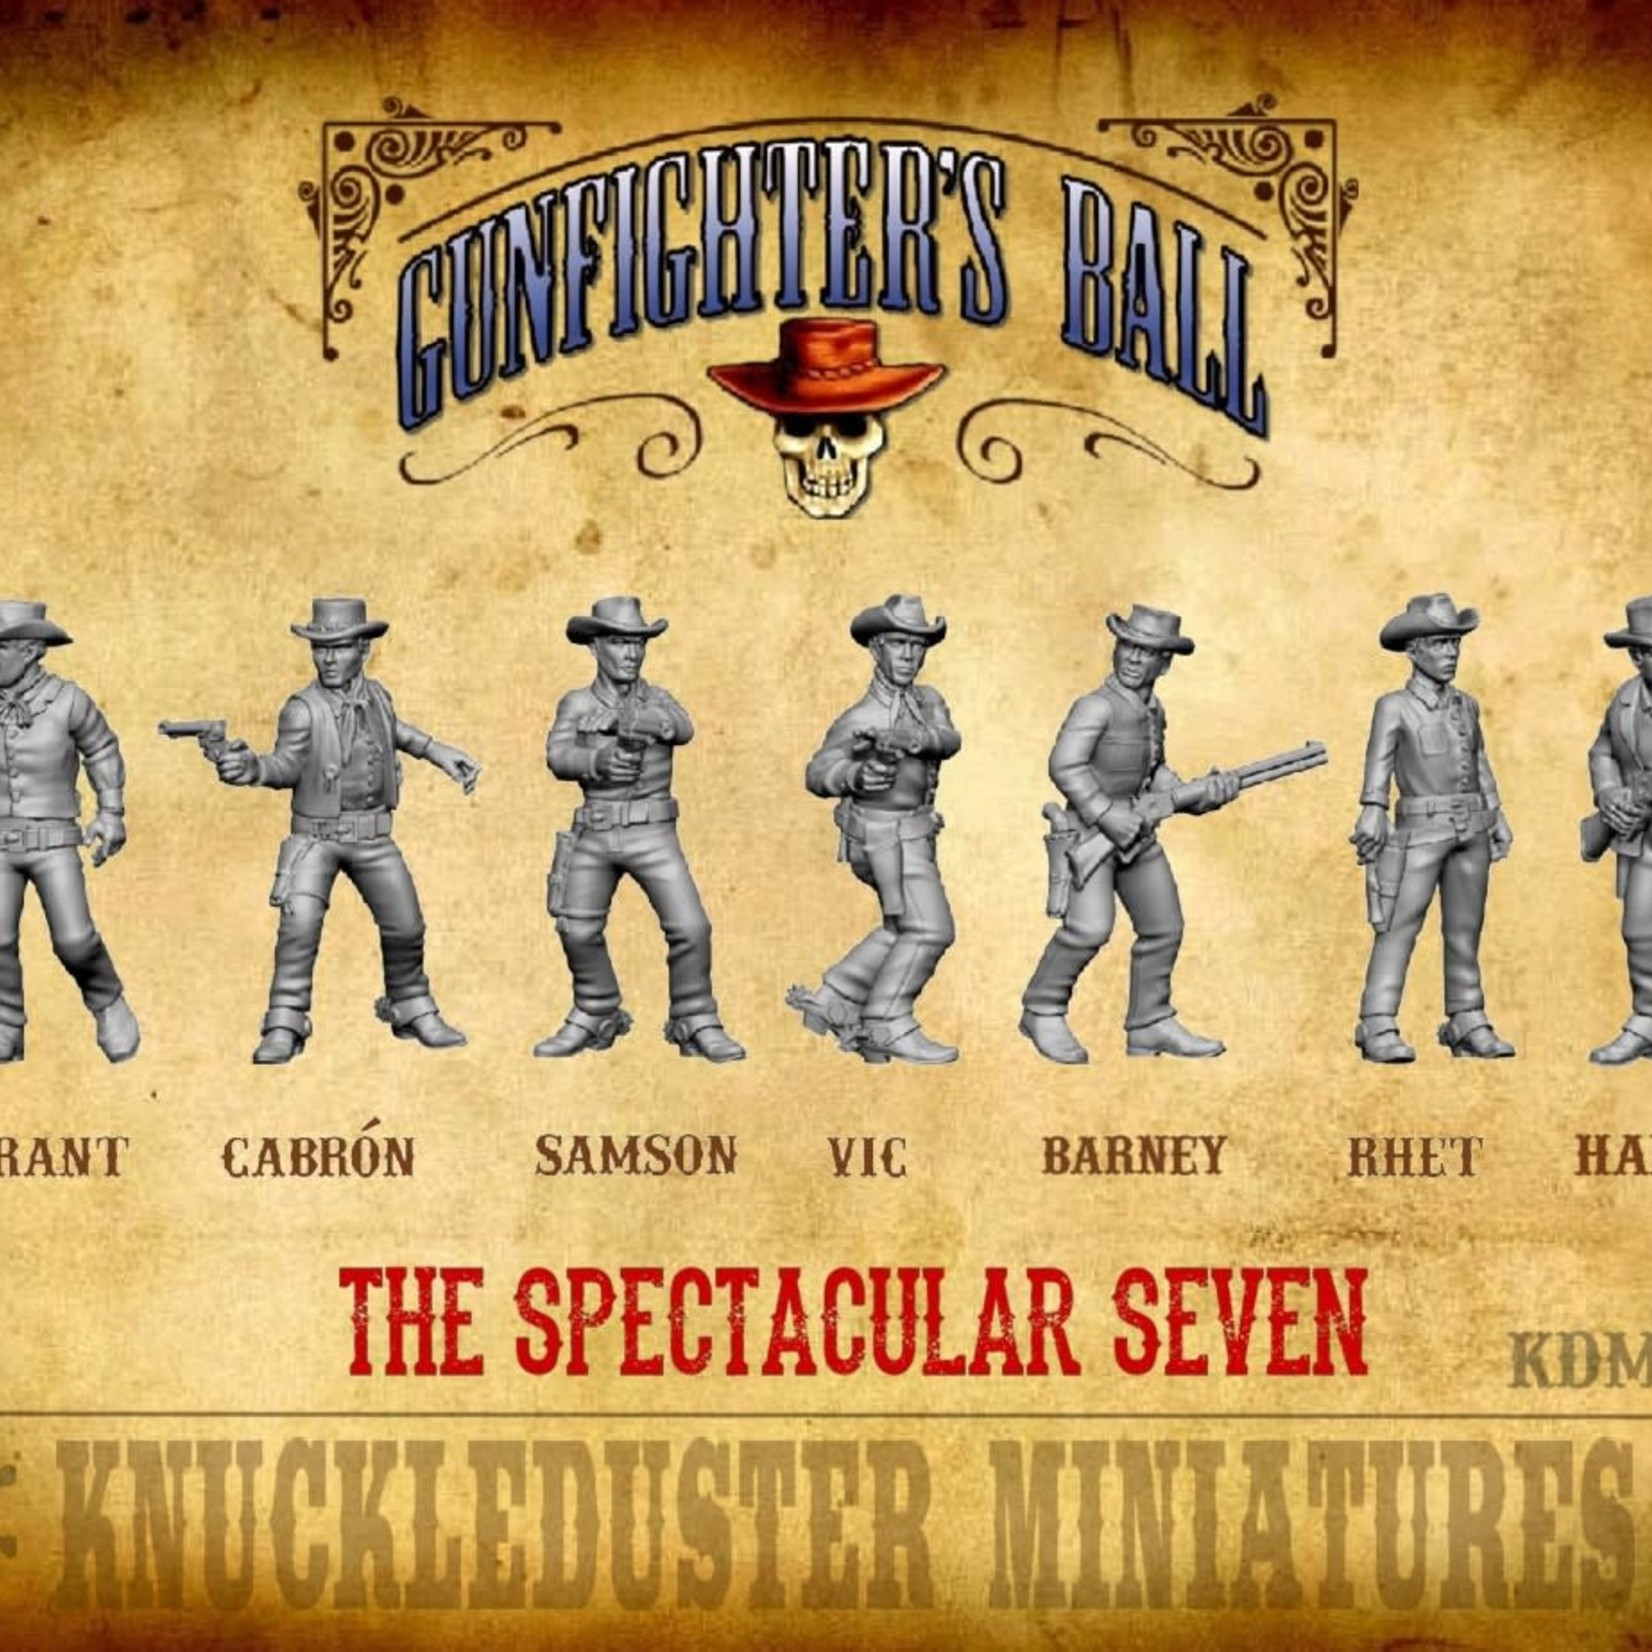 The Spectacular Seven